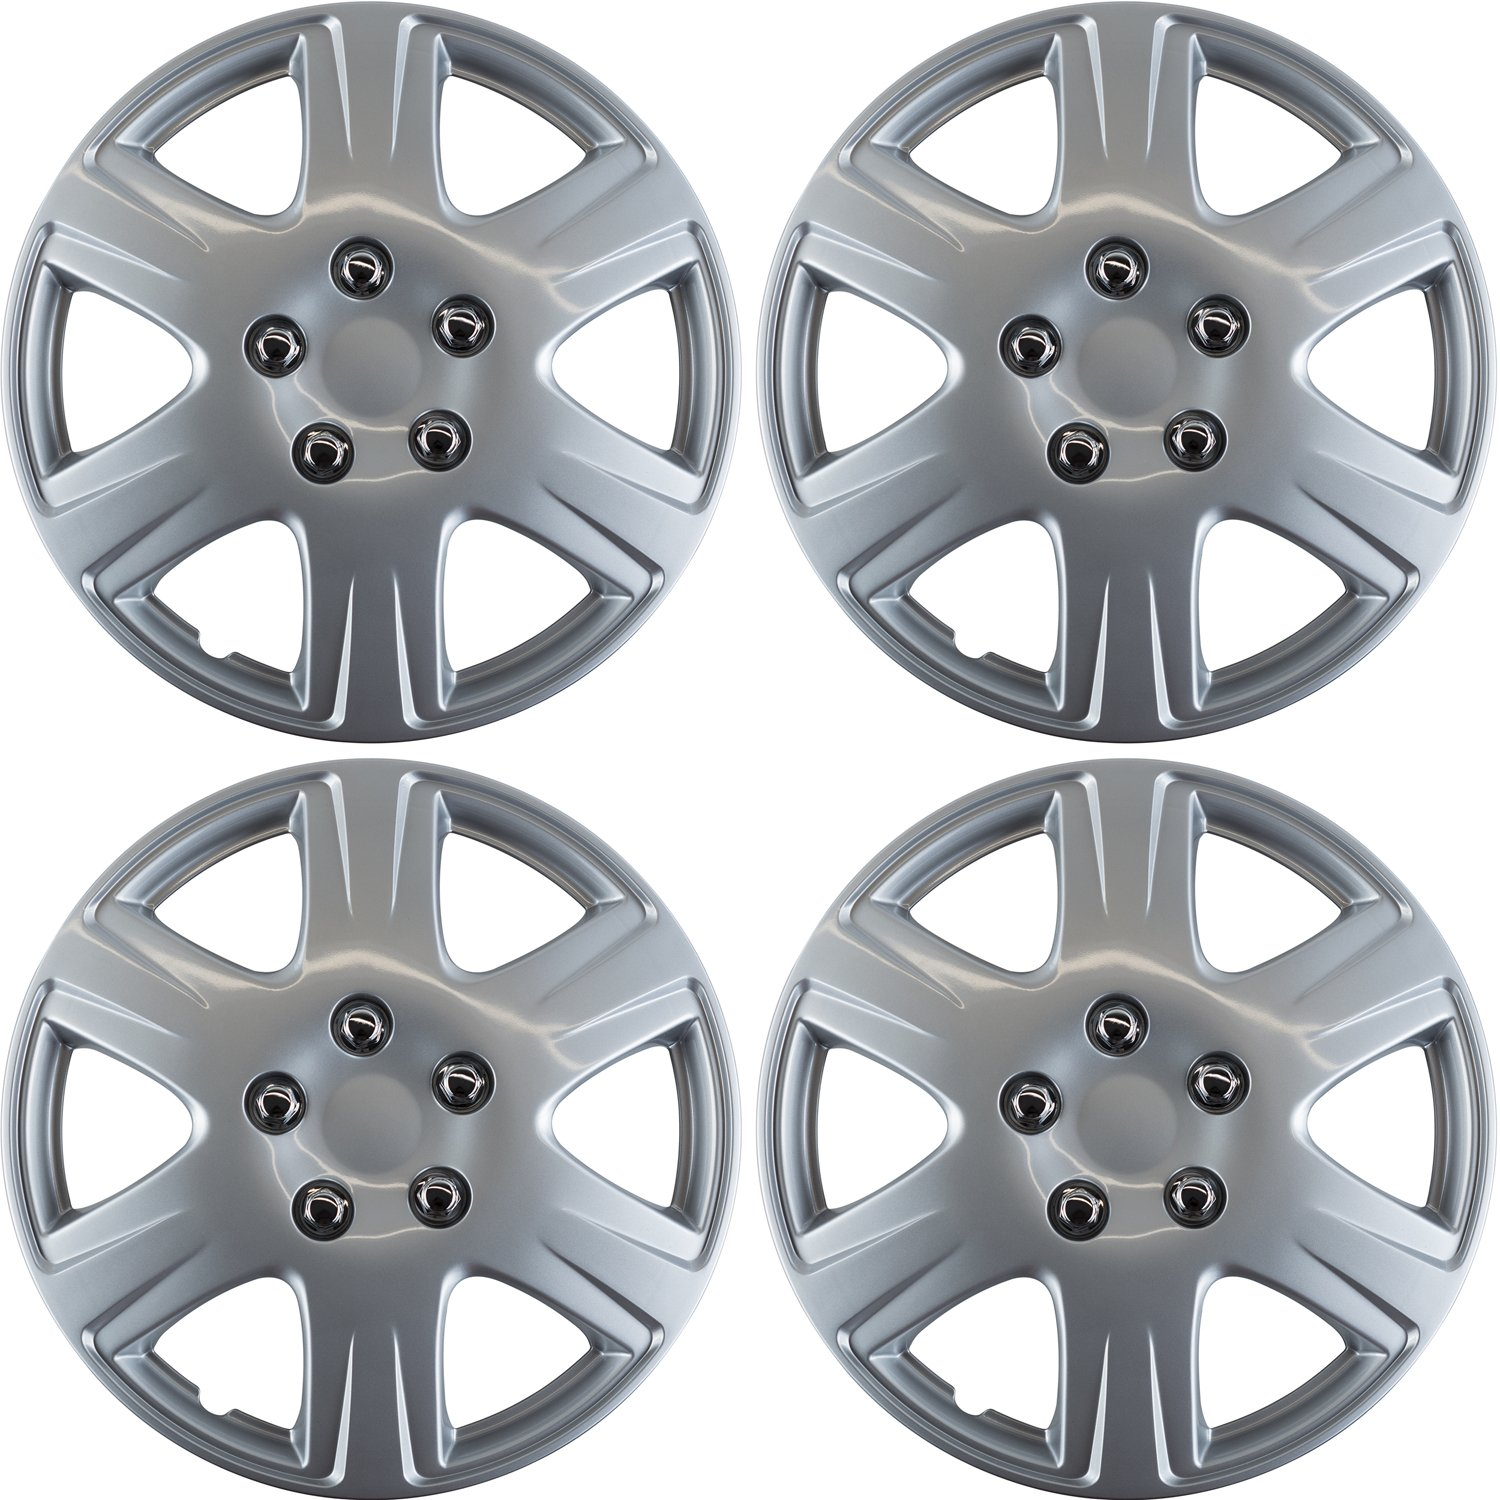 Exelent Wire Hubcaps For Gm Frieze Electrical And Wiring Diagram Ideas Thetada Com